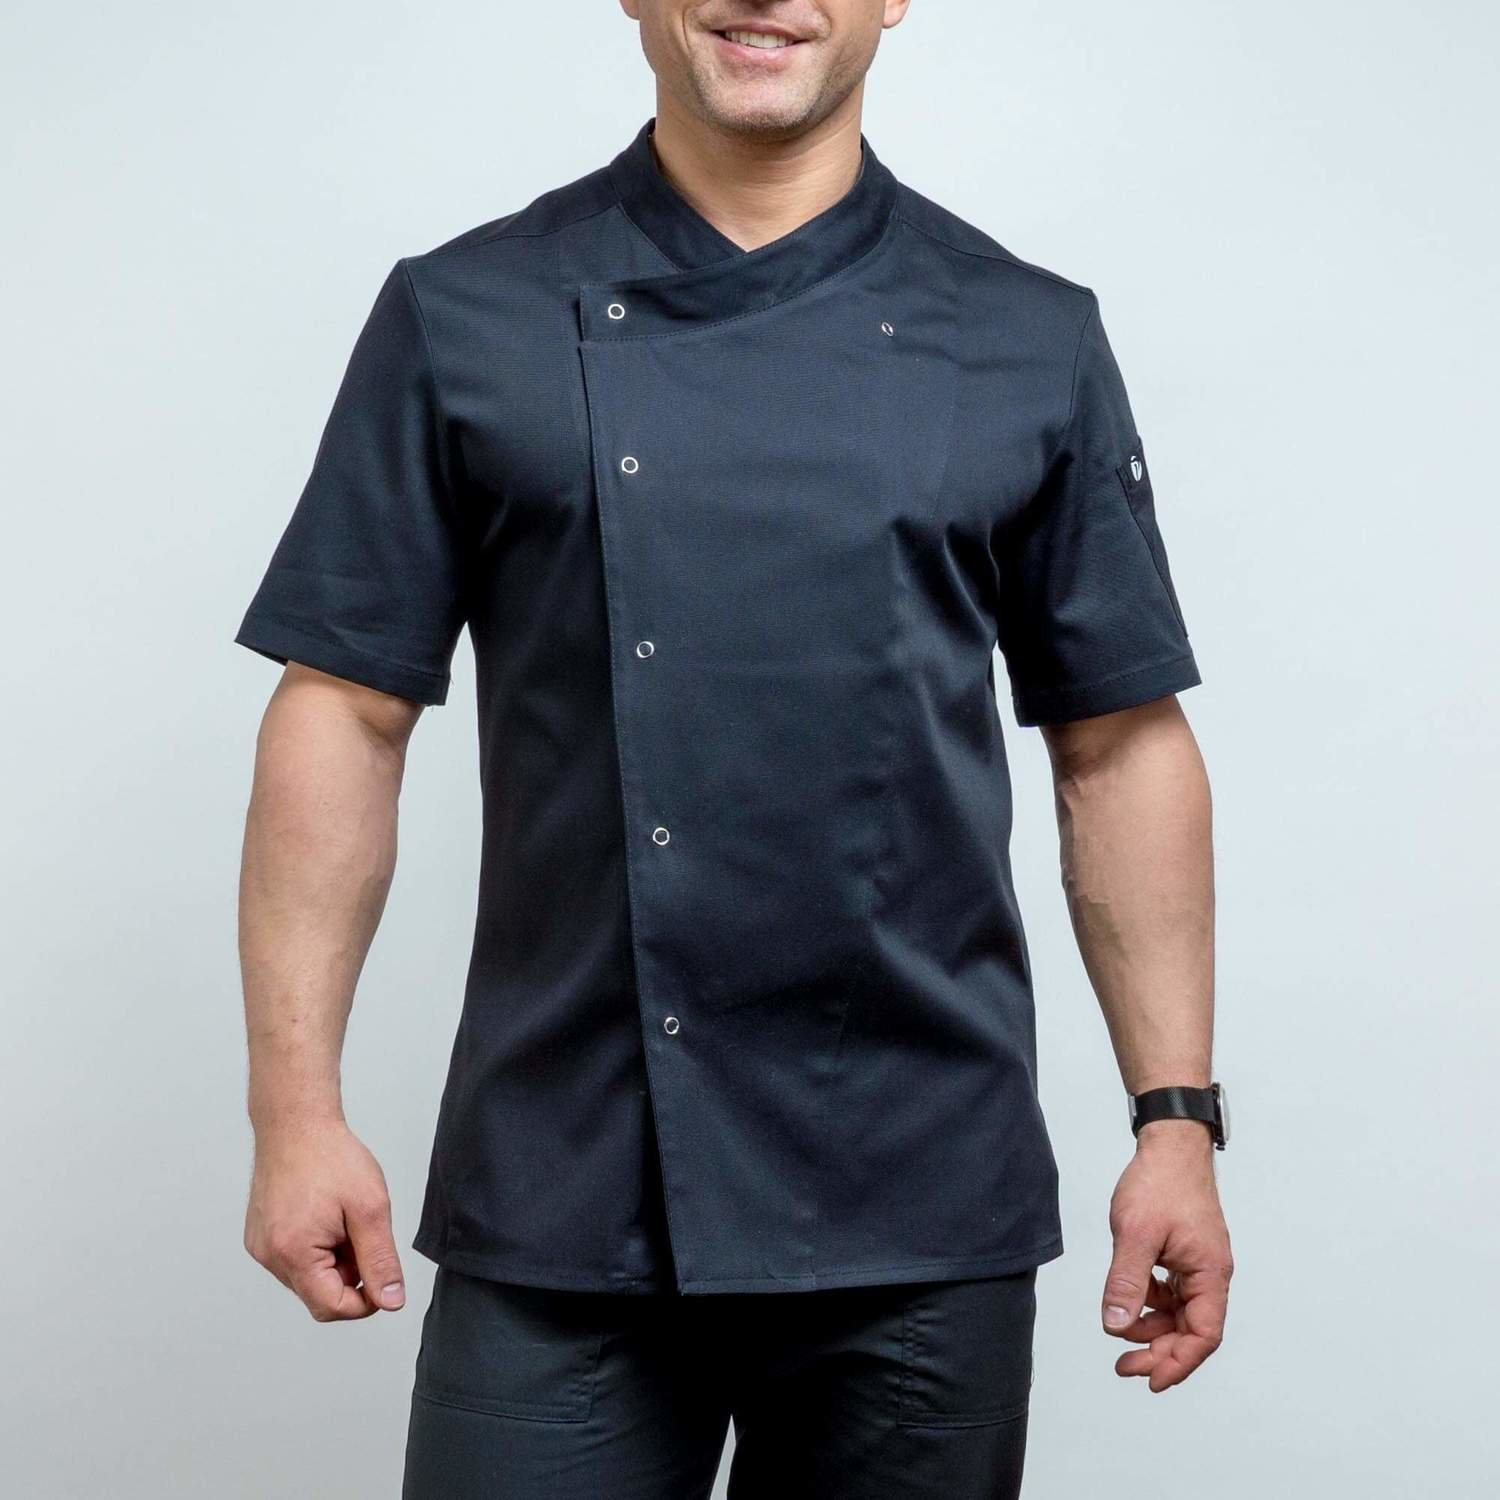 105ABSX - CHEF'S JACKET